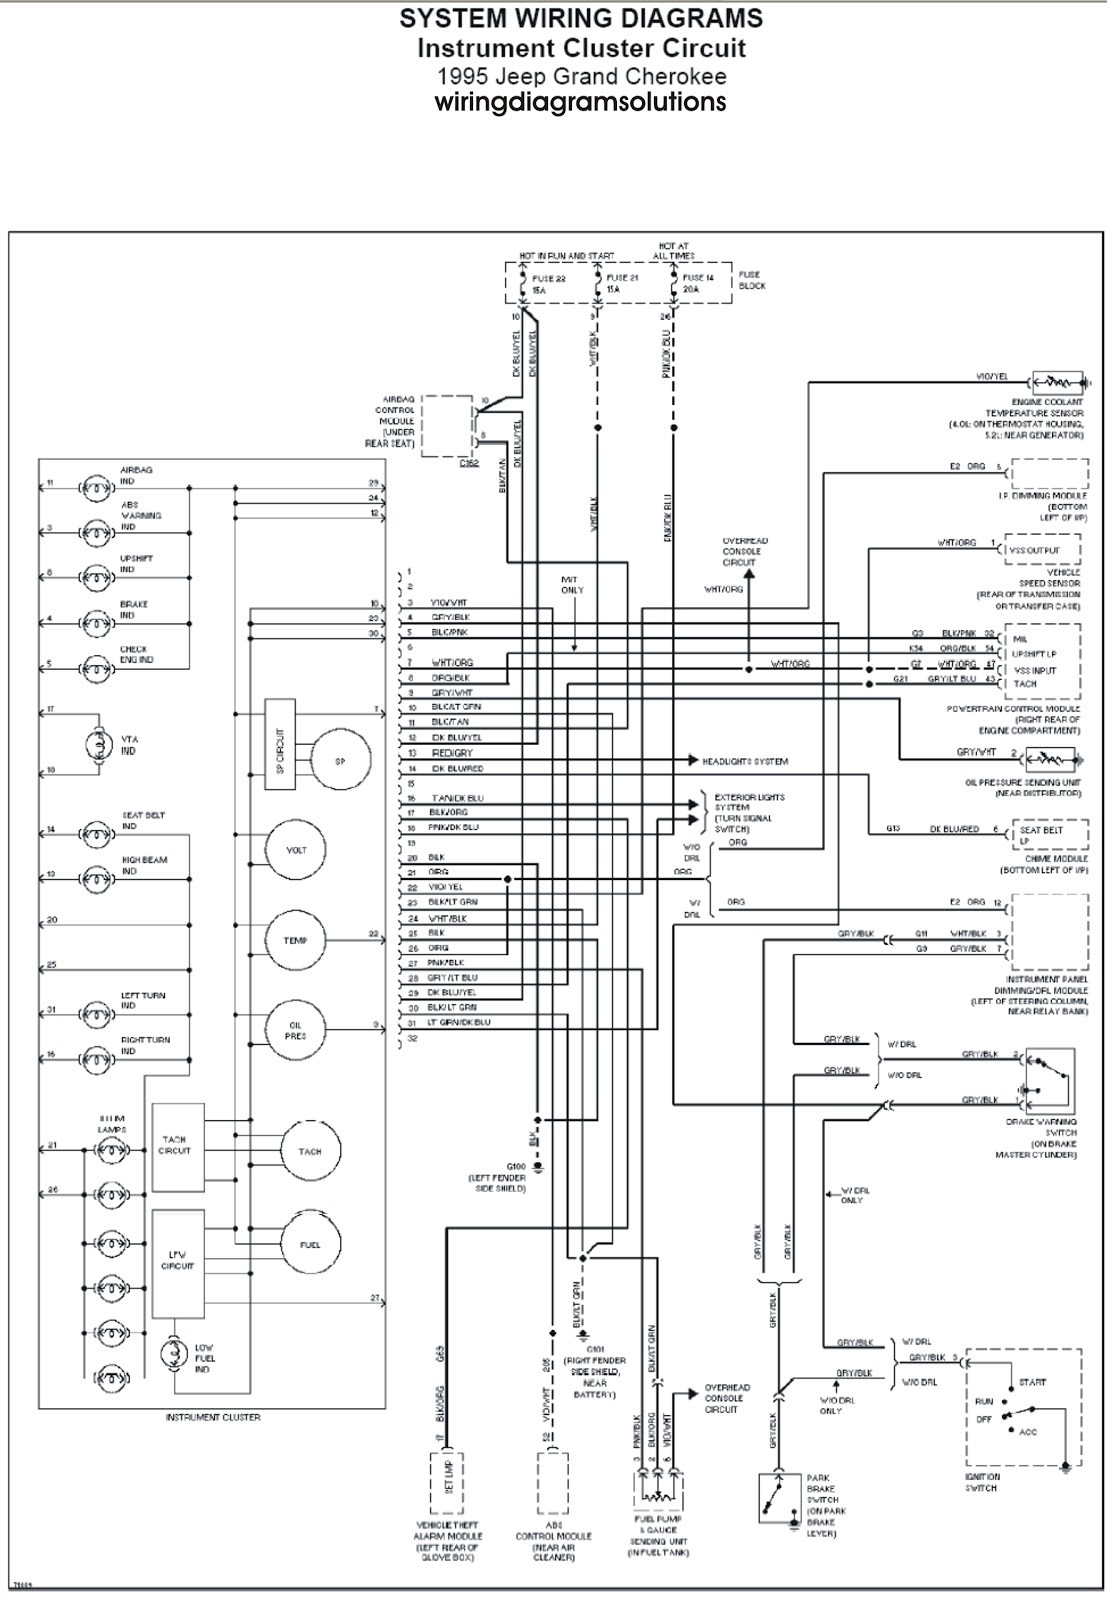 Jeep zj infinity wiring diagram illustration of wiring diagram 1999 jeep grand cherokee infinity stereo wiring diagram best of rh mainetreasurechest com 2000 jeep grand asfbconference2016 Image collections